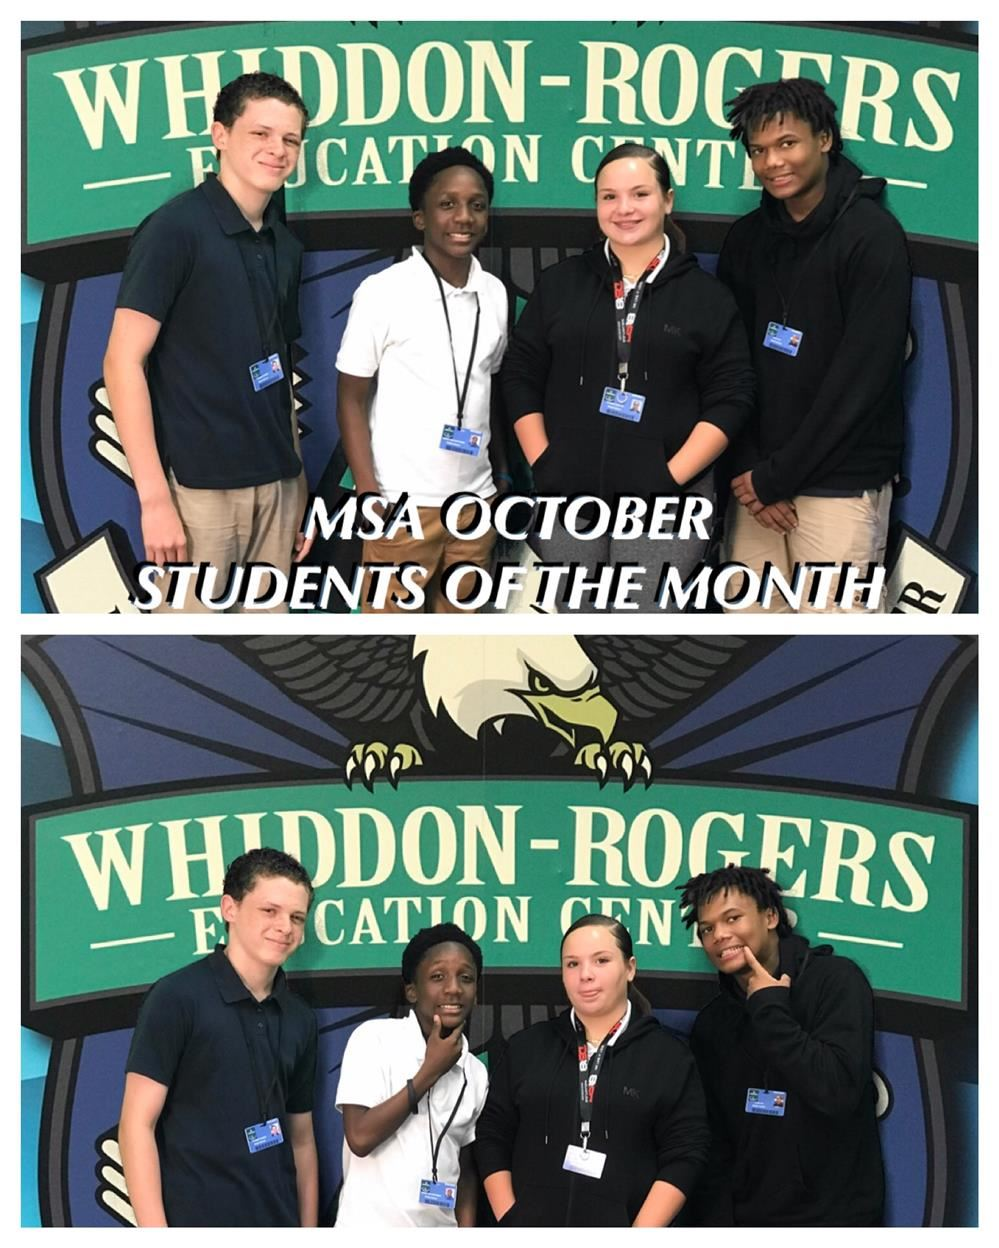 MSA October Students of the Month